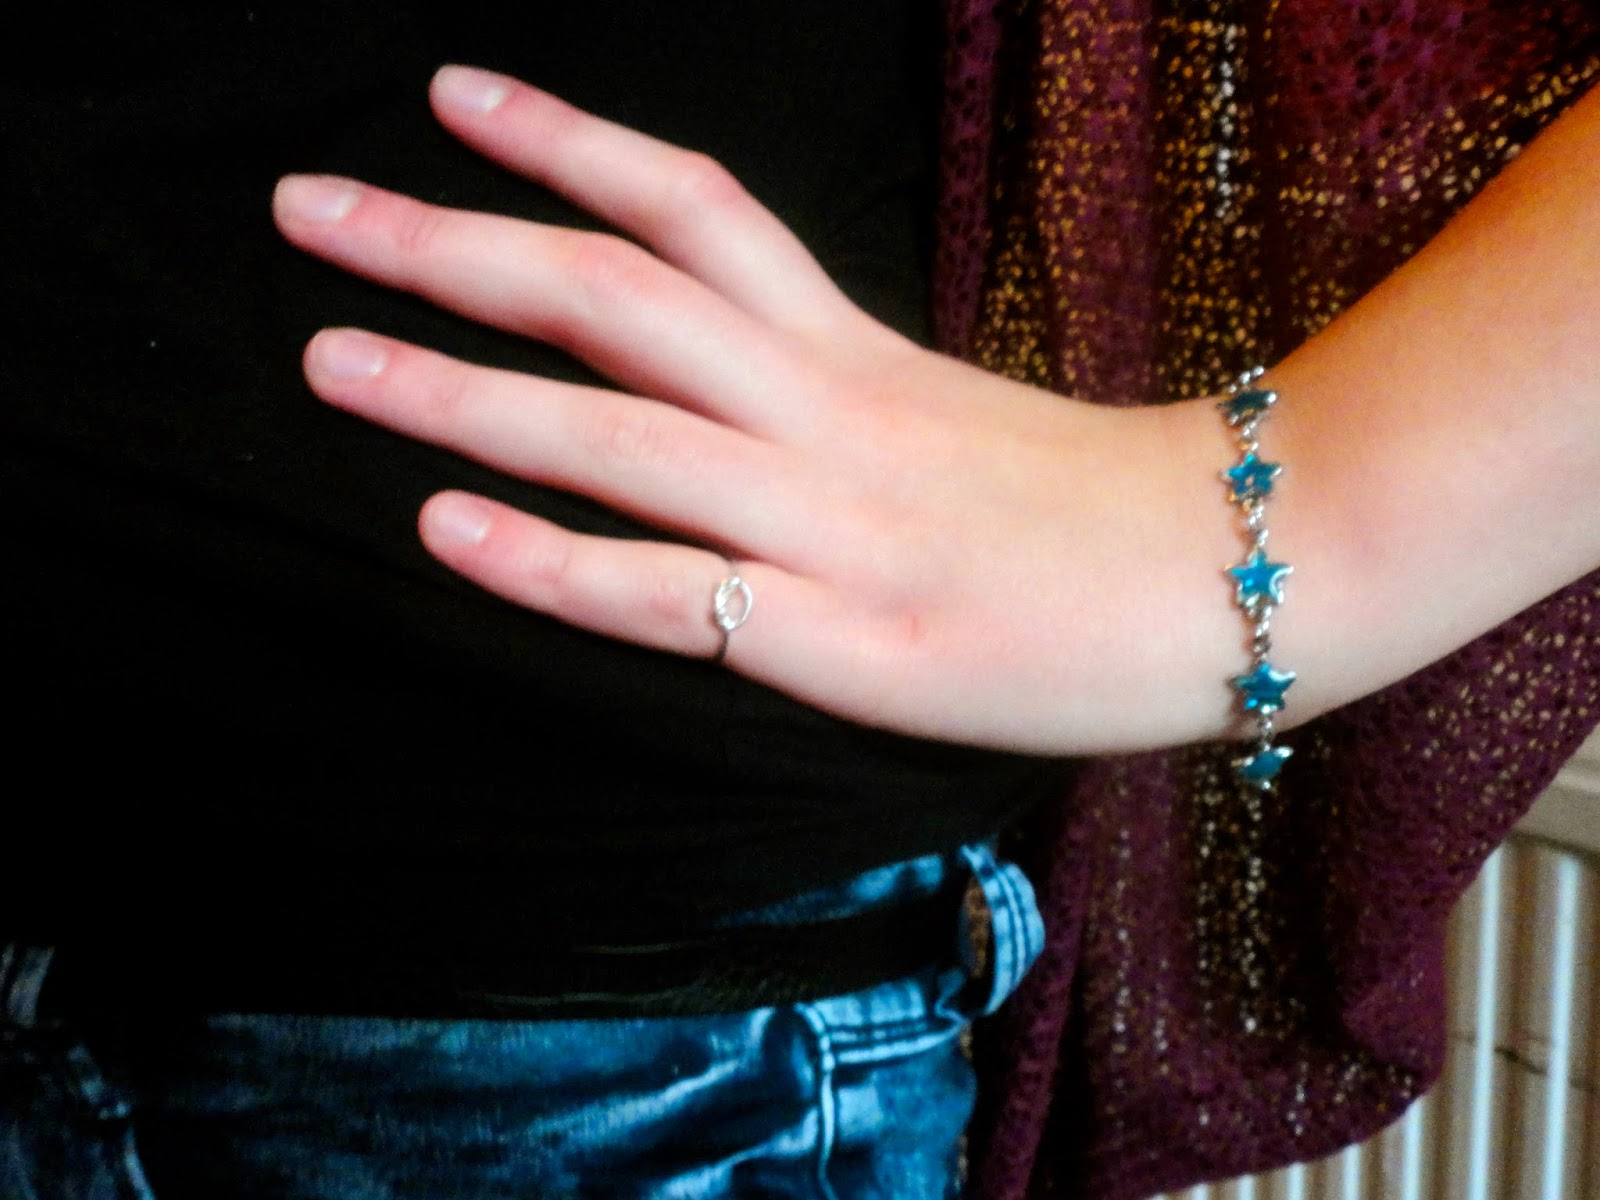 Outfit jewellery details of blue starfish bracelet and silver knot ring